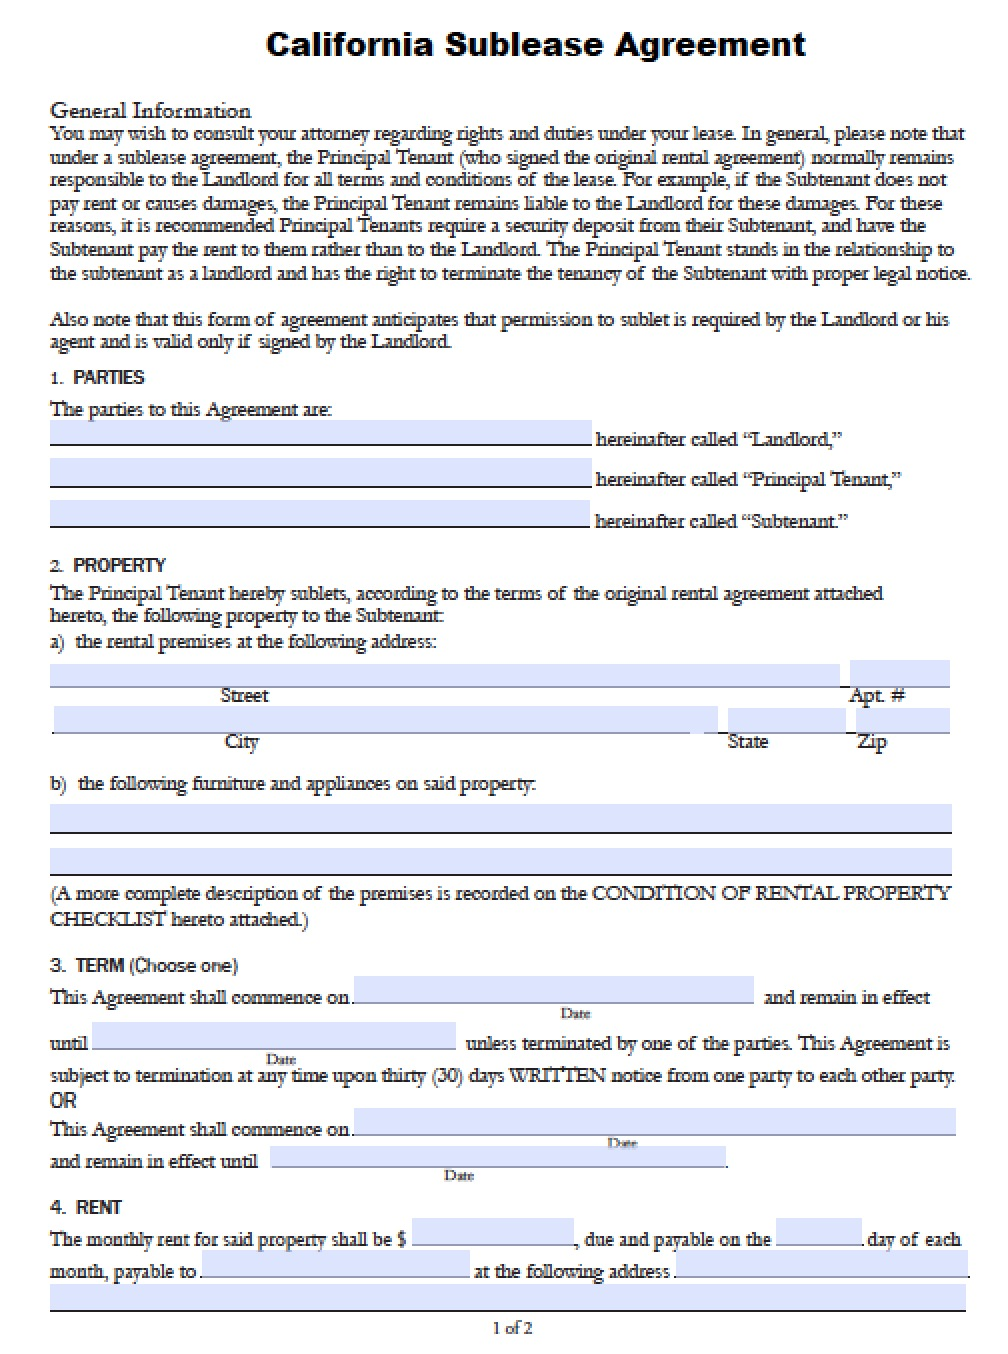 Free California SubLease Agreement PDF Word Doc - Sublease agreement template word